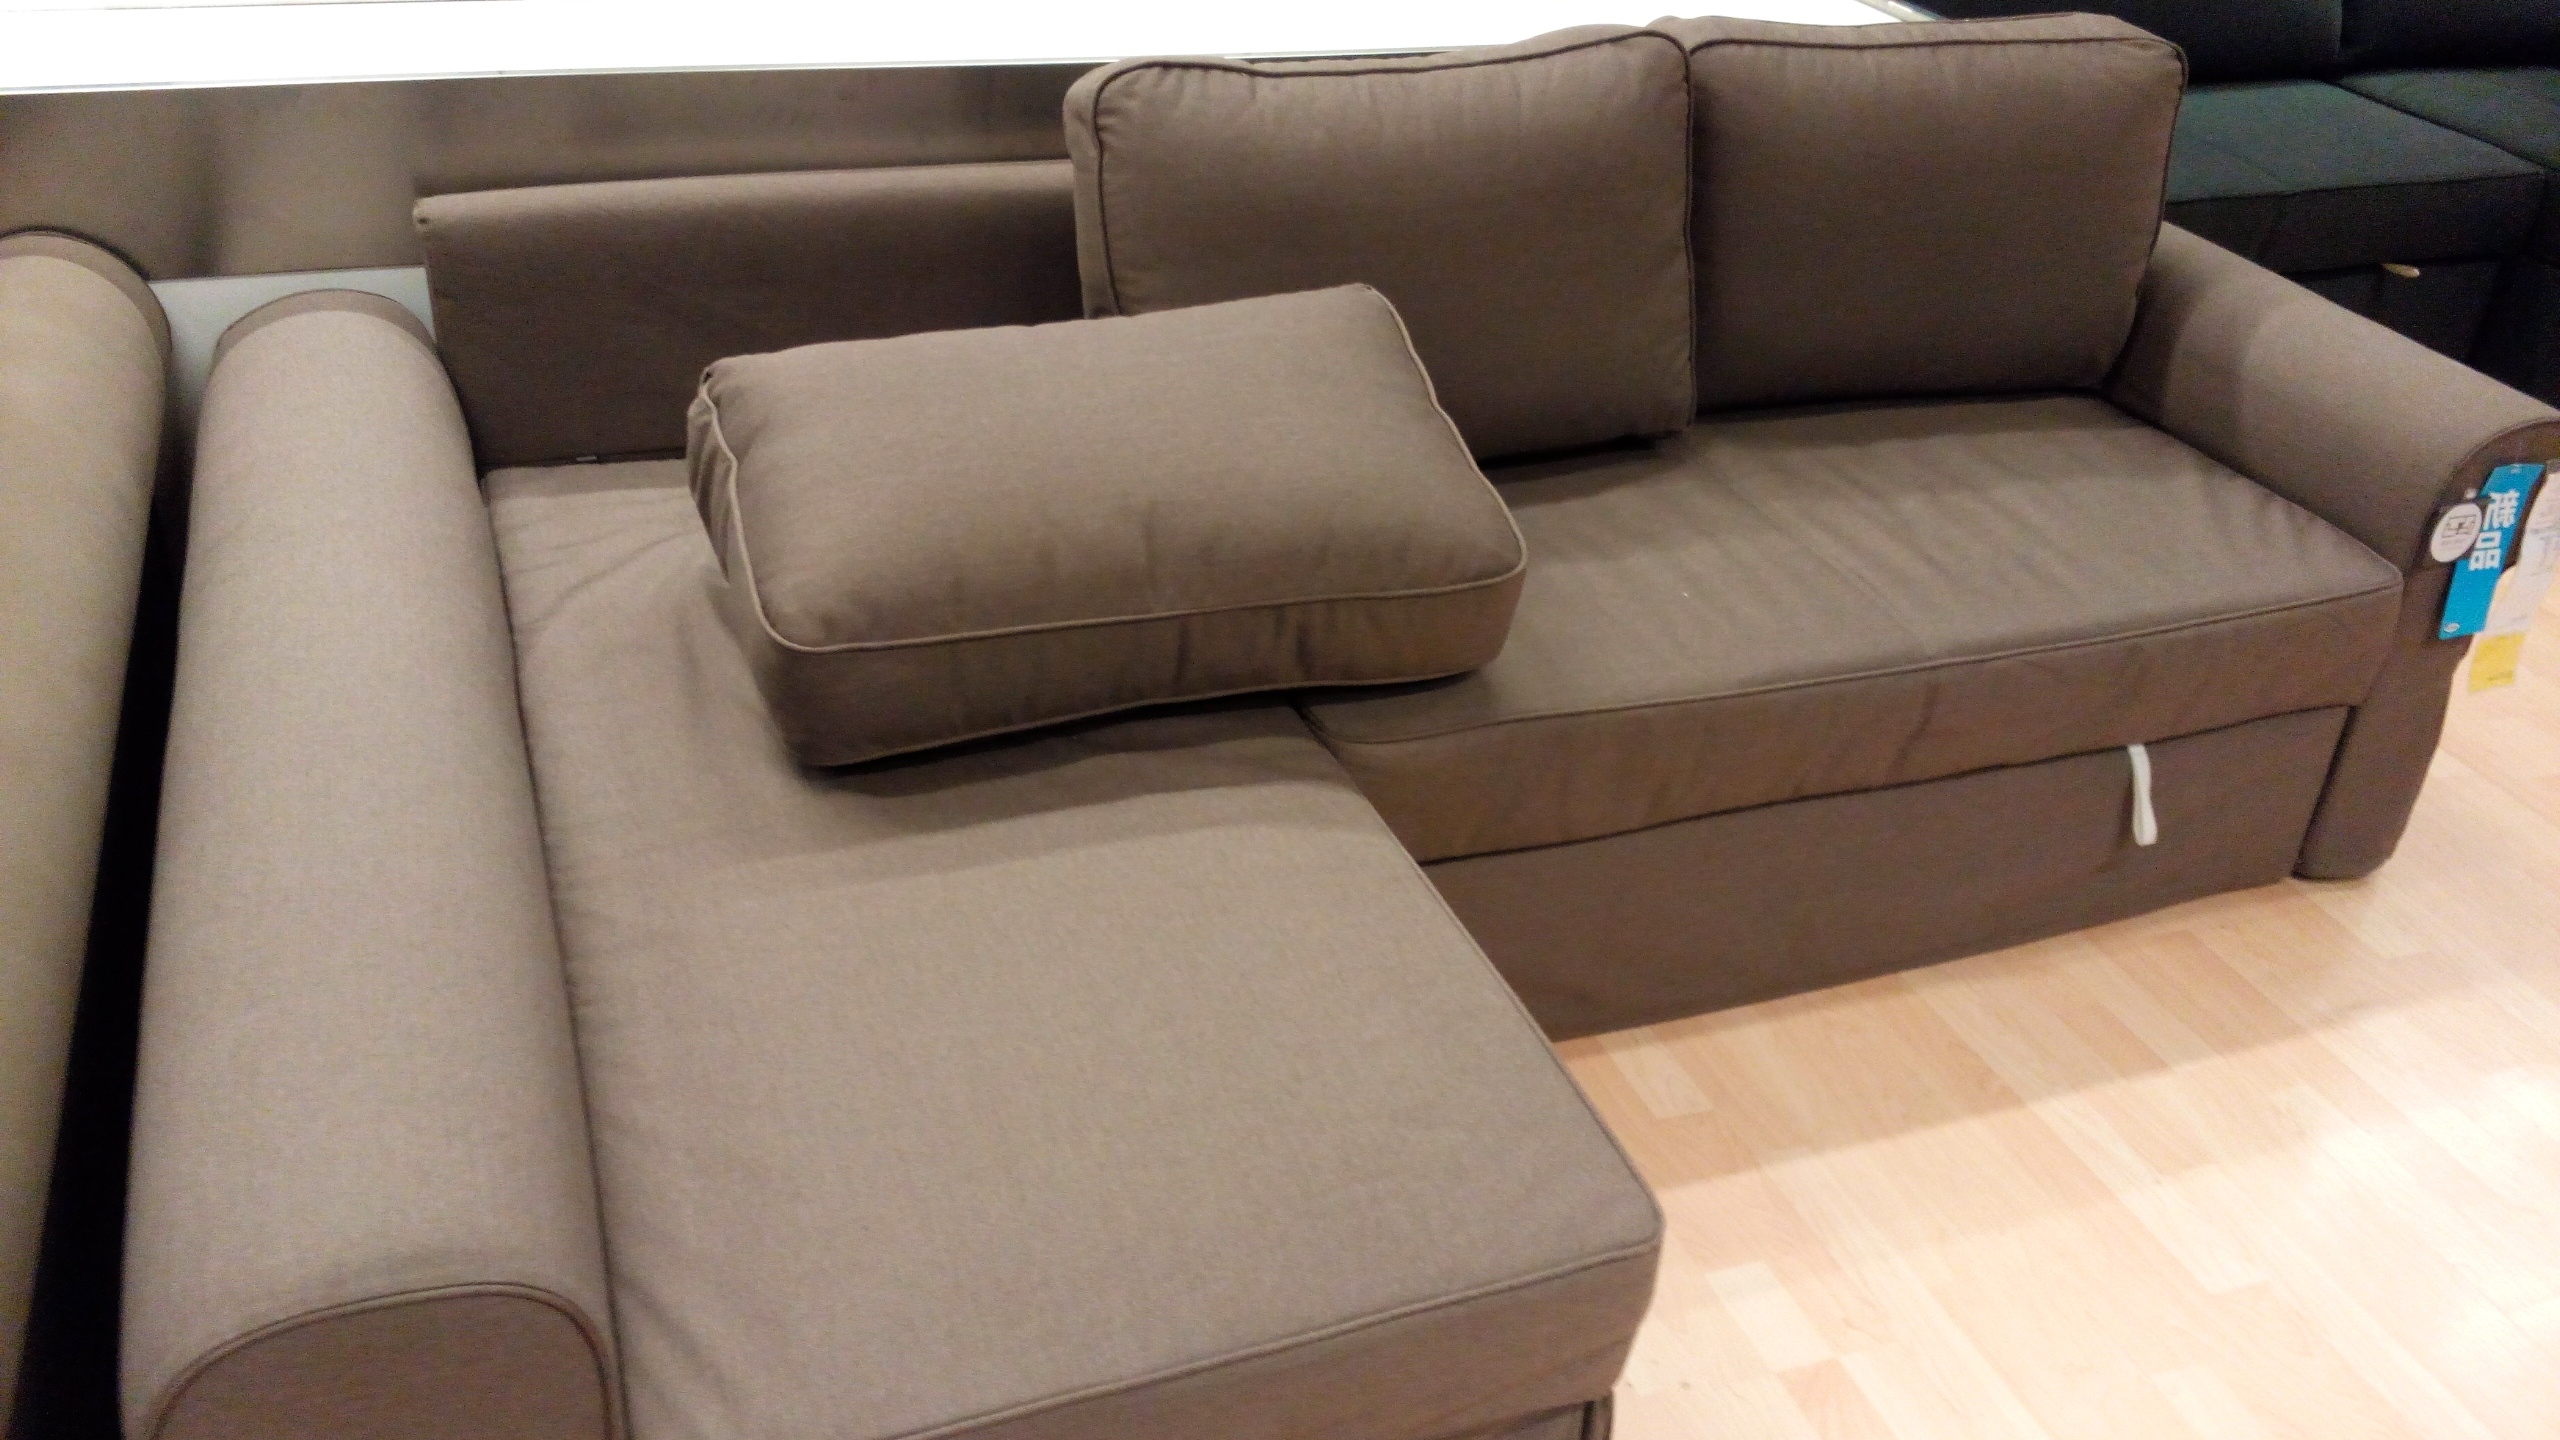 Fashionable Sofa Beds With Chaise Lounge Within Ikea Vilasund And Backabro Review – Return Of The Sofa Bed Clones! (View 9 of 15)